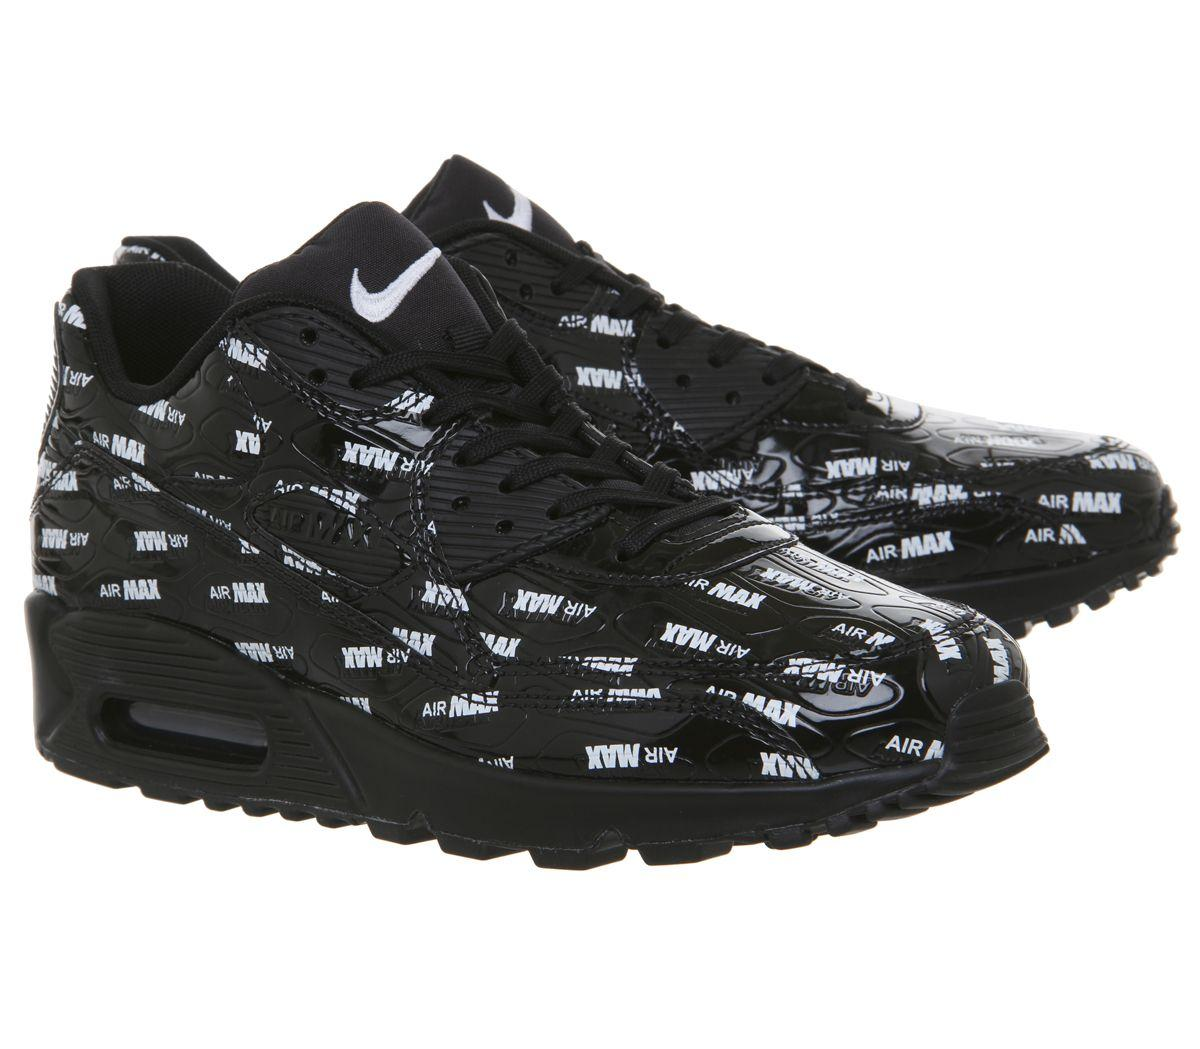 9576c4fbf5 Nike Air Max 90 Trainers in Black for Men - Lyst